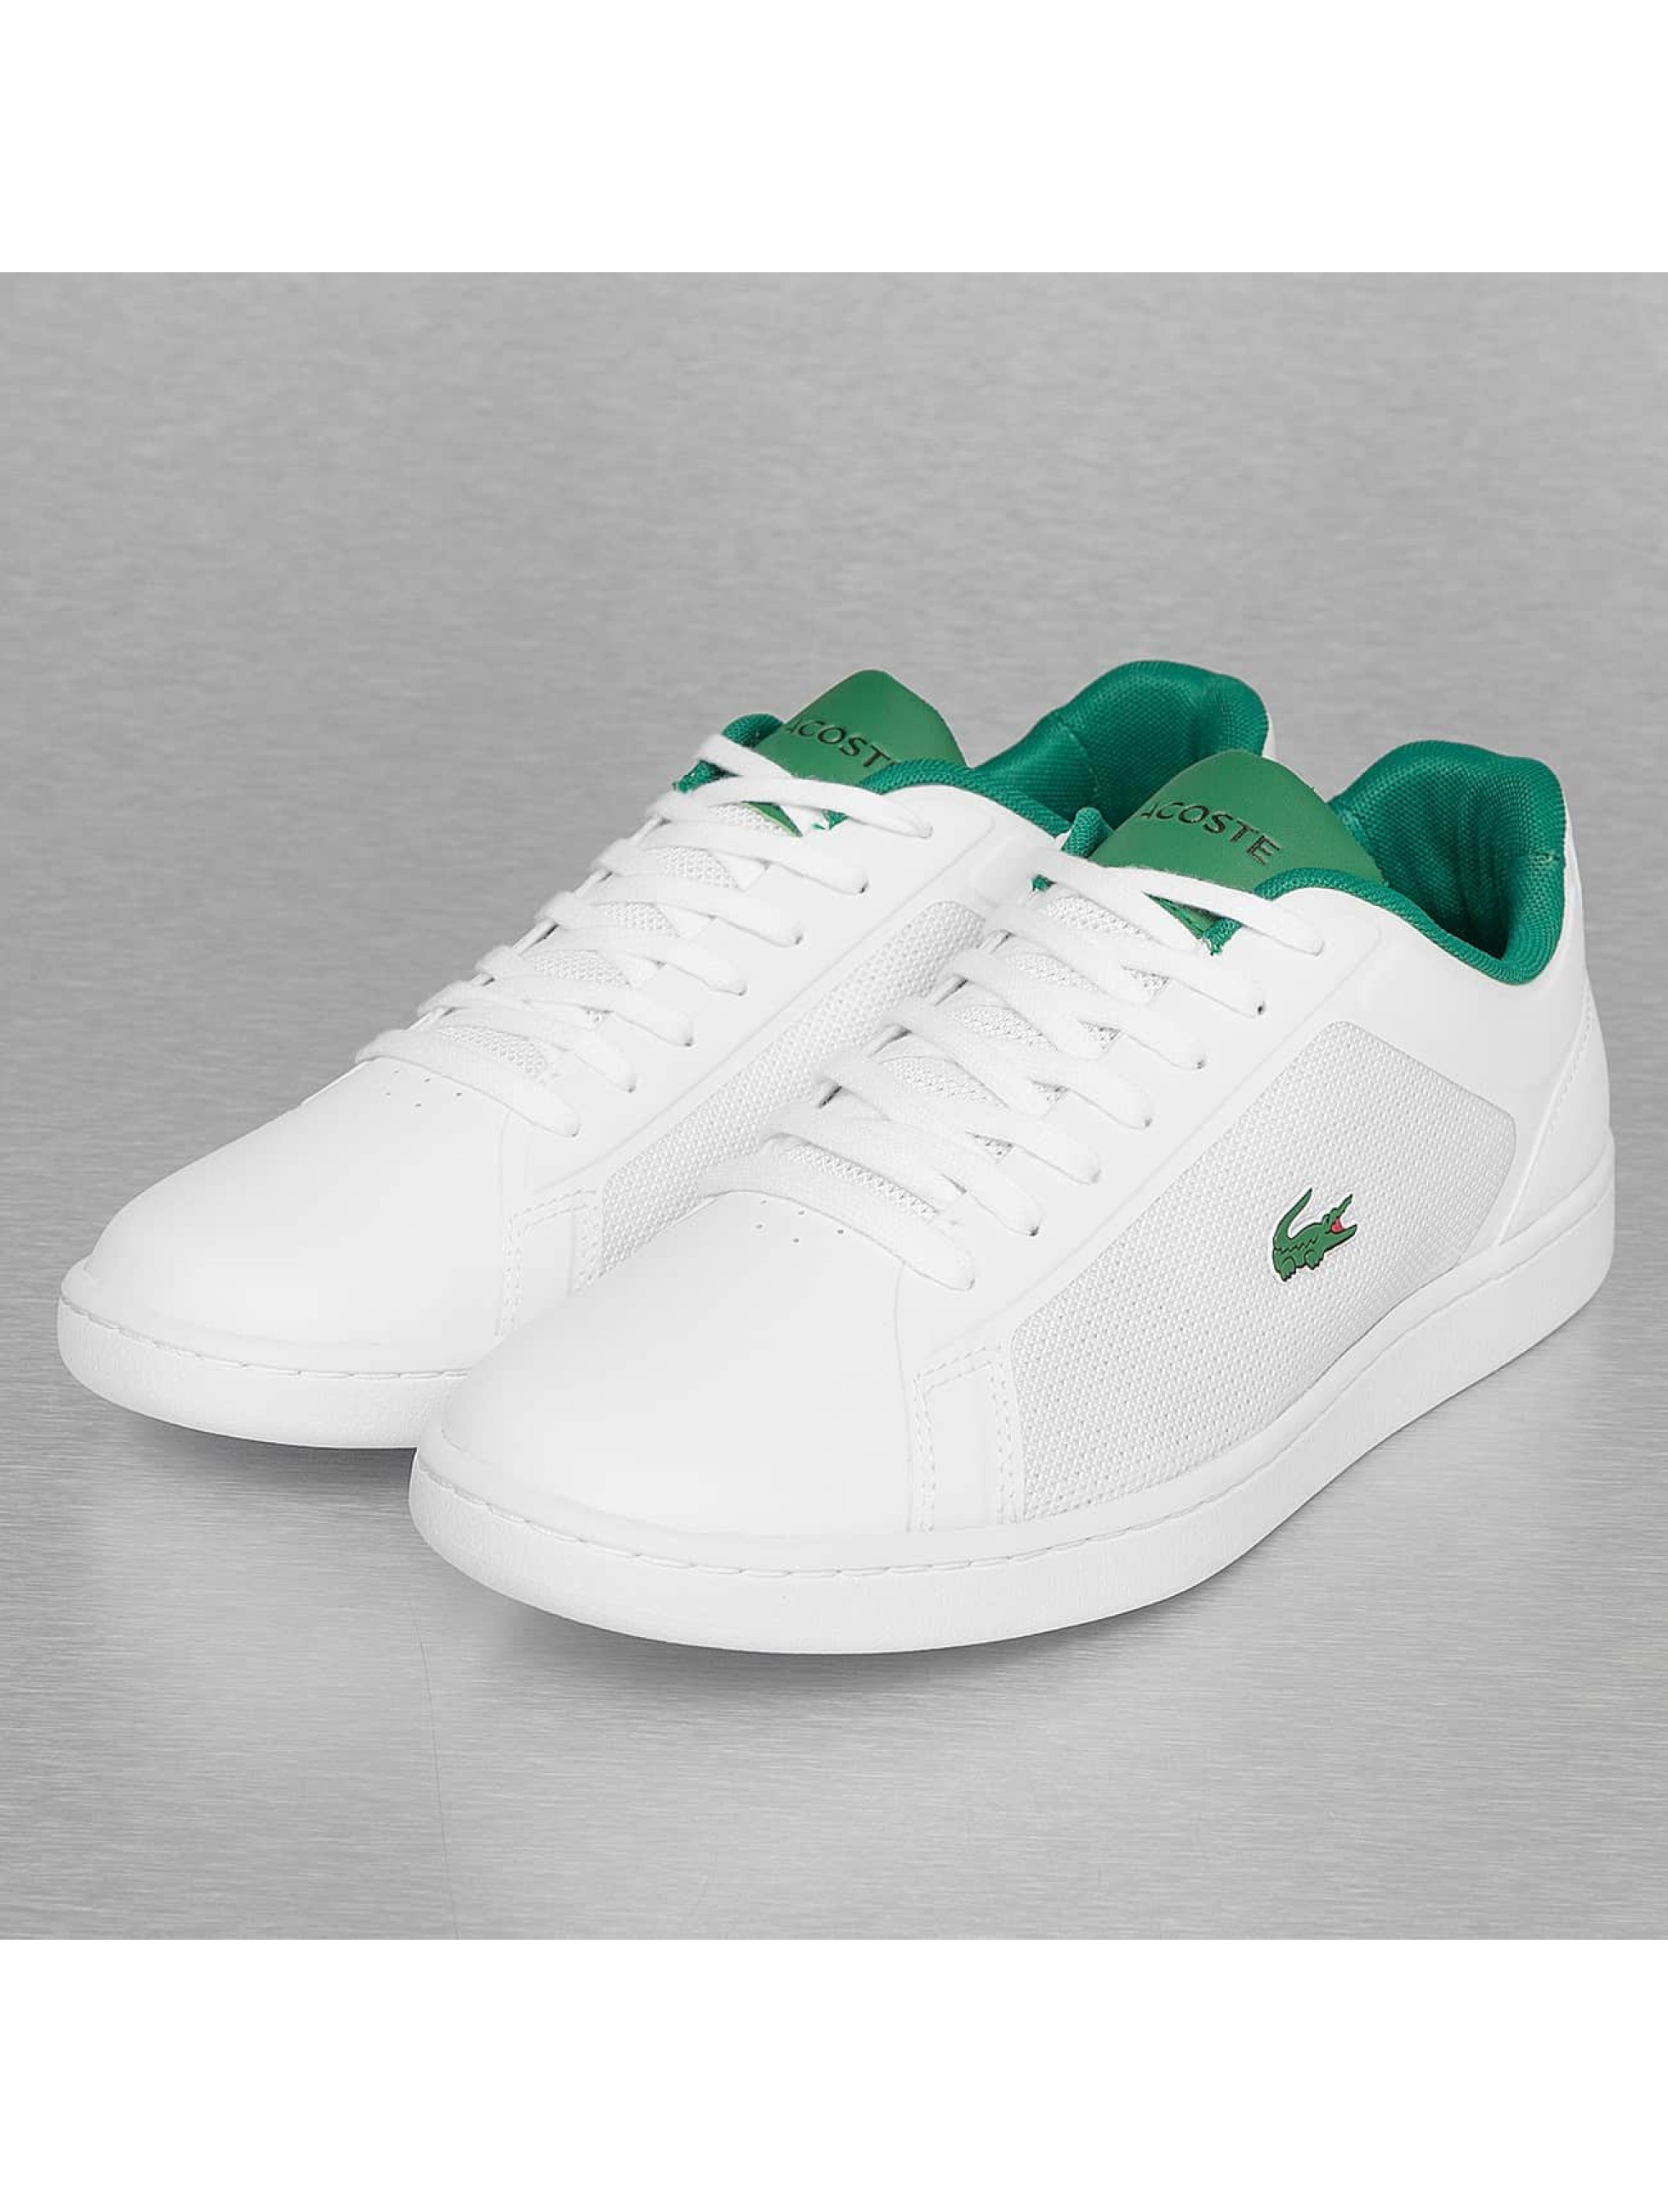 Dc Low Top Shoes